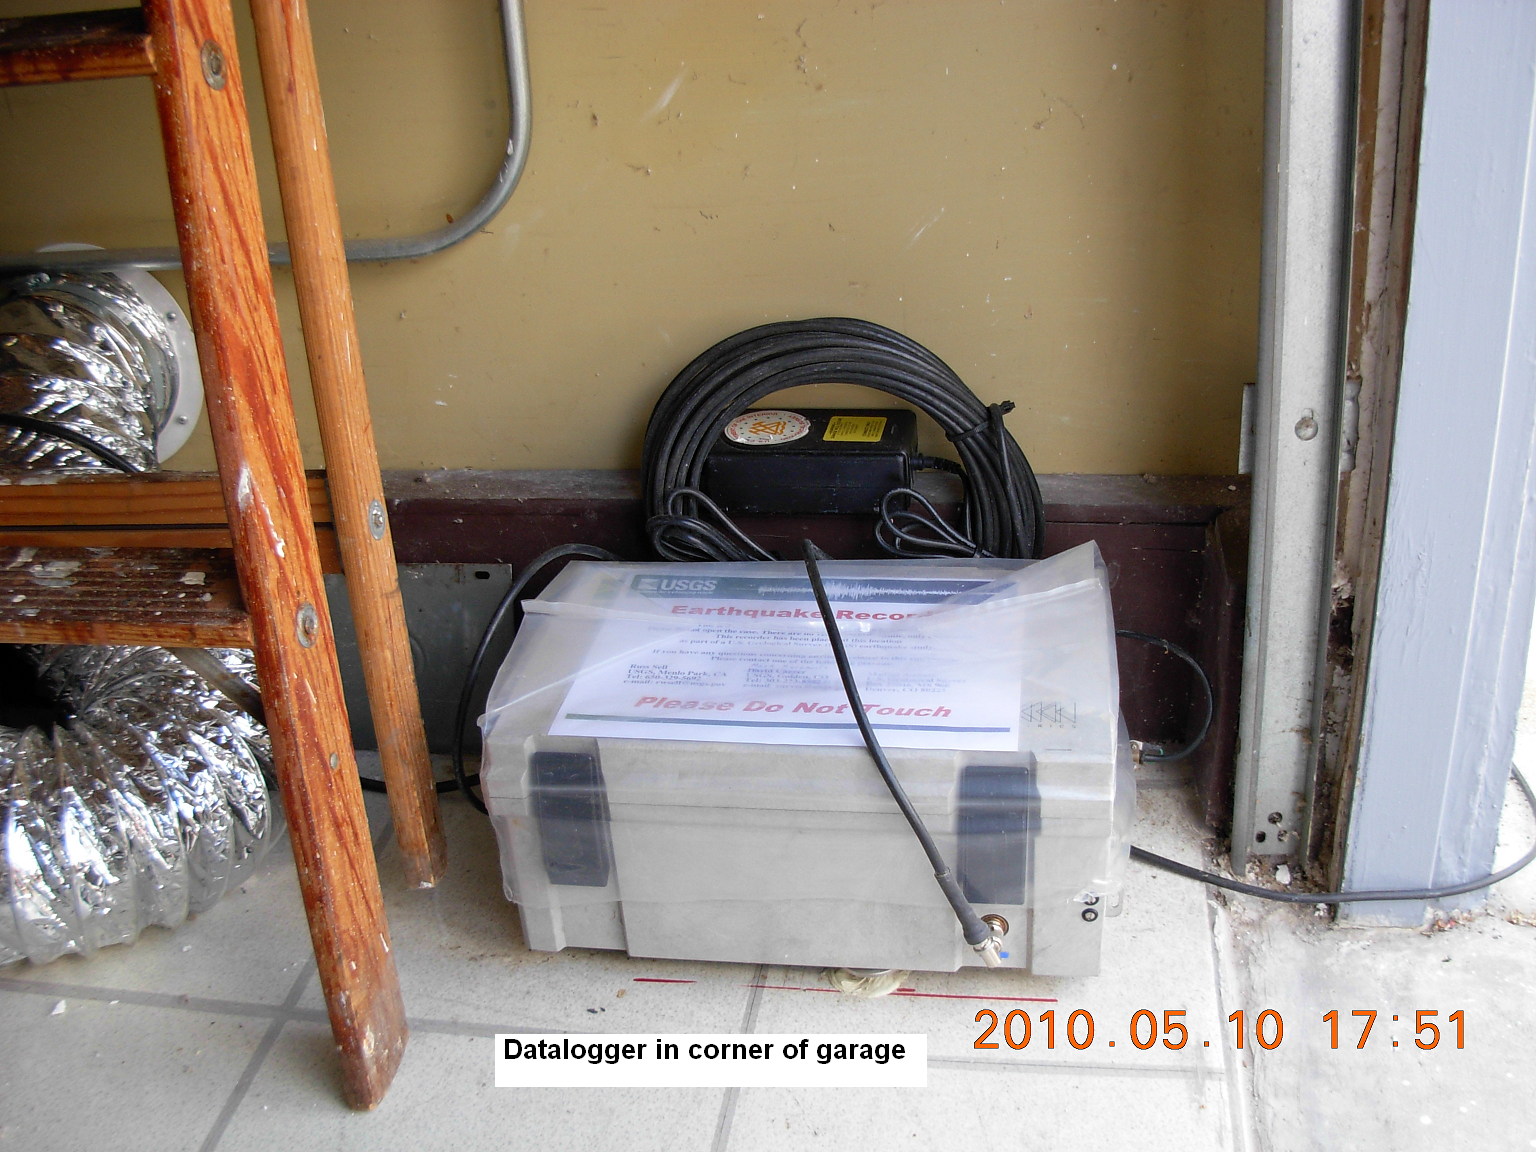 The K2 seismograph installed in a garage corner. (Courtesy USGS)